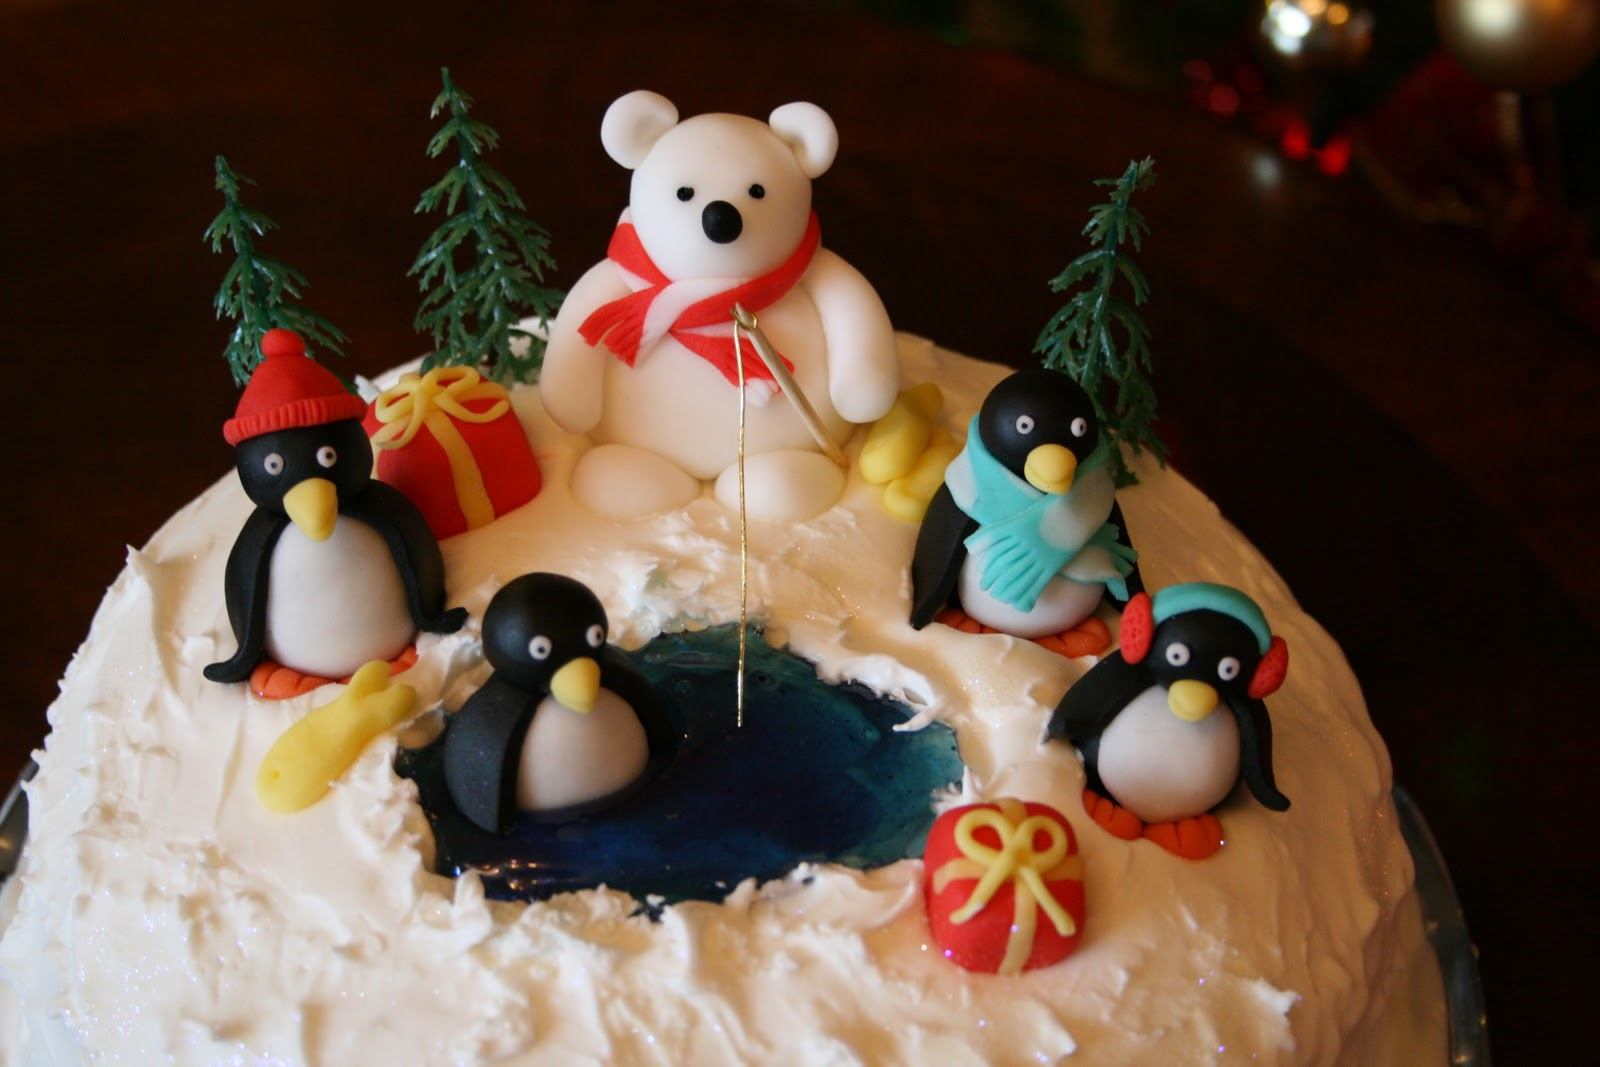 Christmas Cake Ideas With Penguins : lauralovescakes...: Penguin Party Christmas Cake